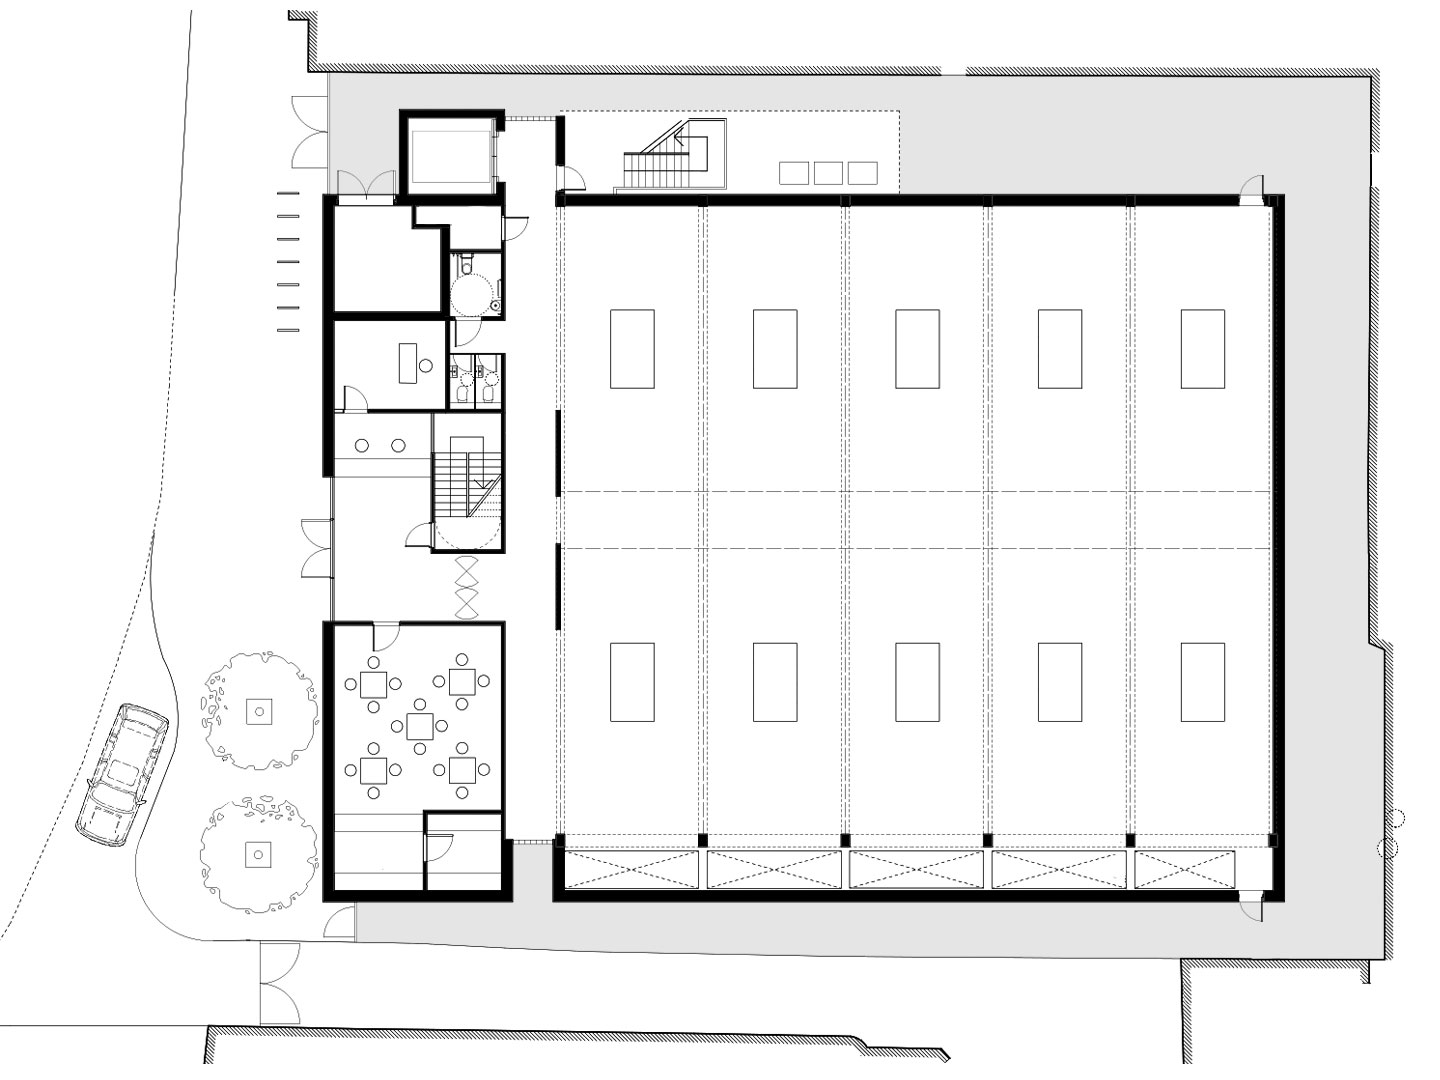 dudden_hill_lane-plan